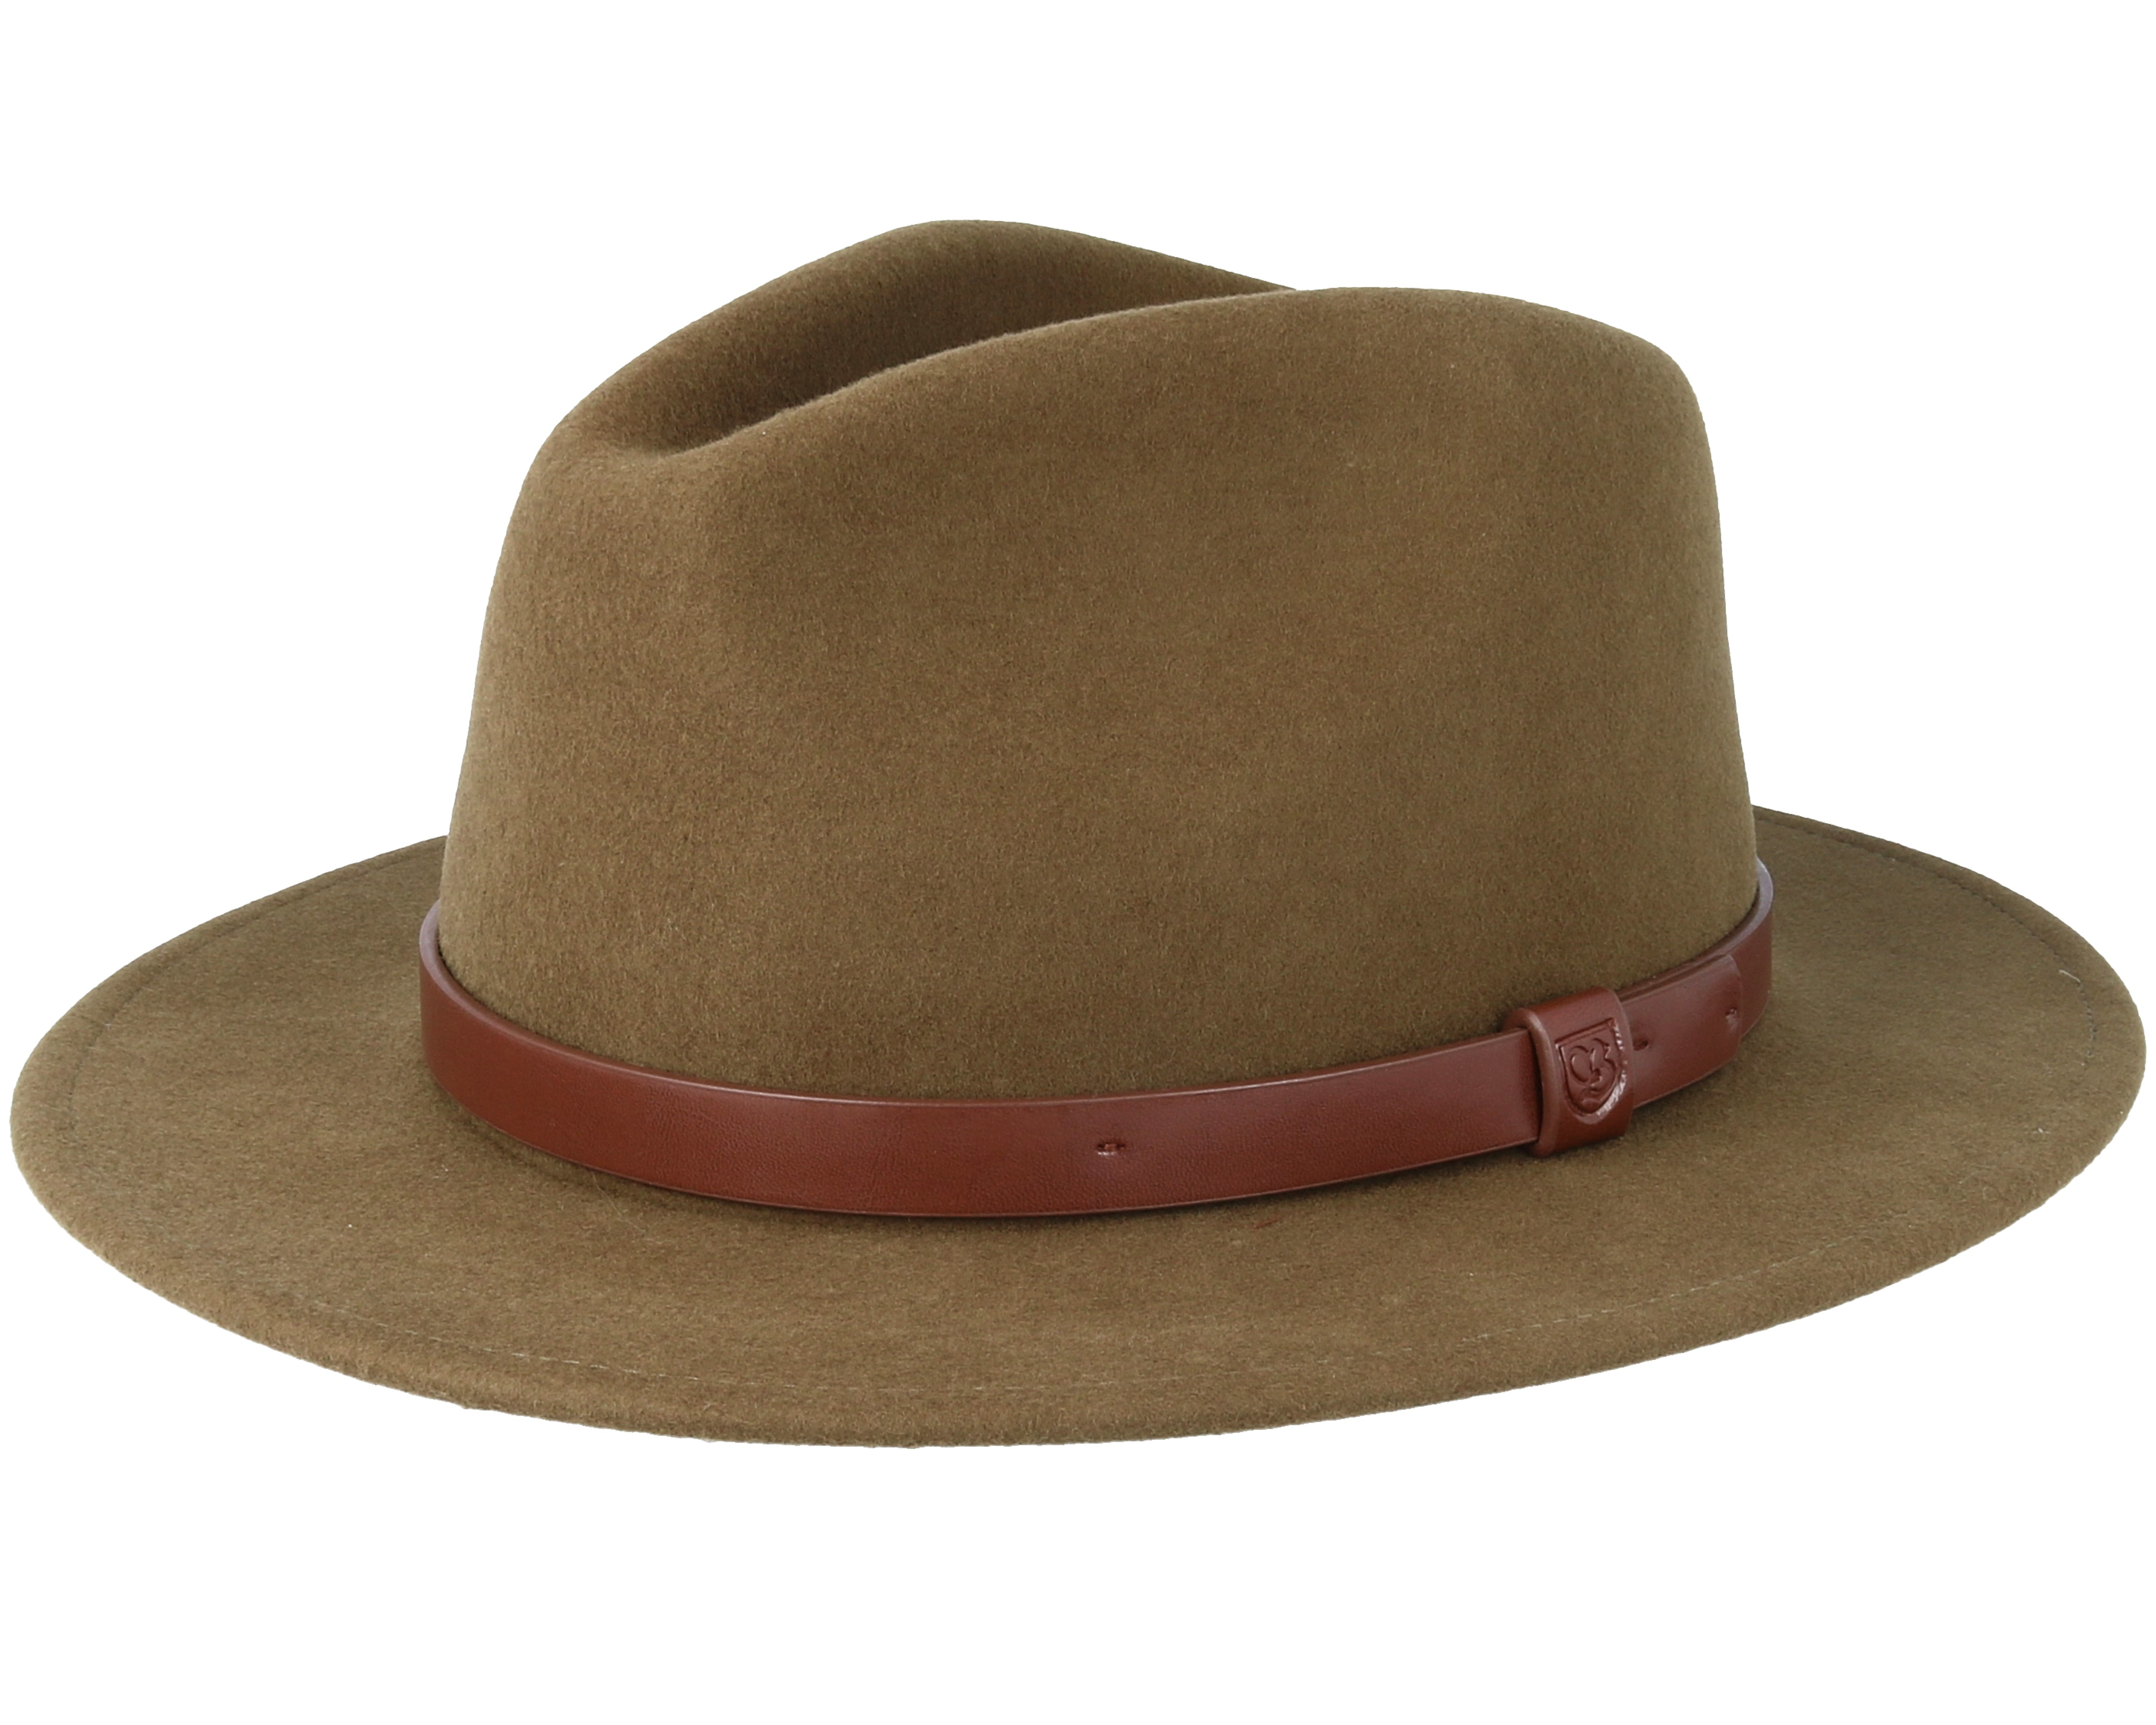 859966a661ee Messer Light Olive Fedora Brixton Hats Hatstorecouk